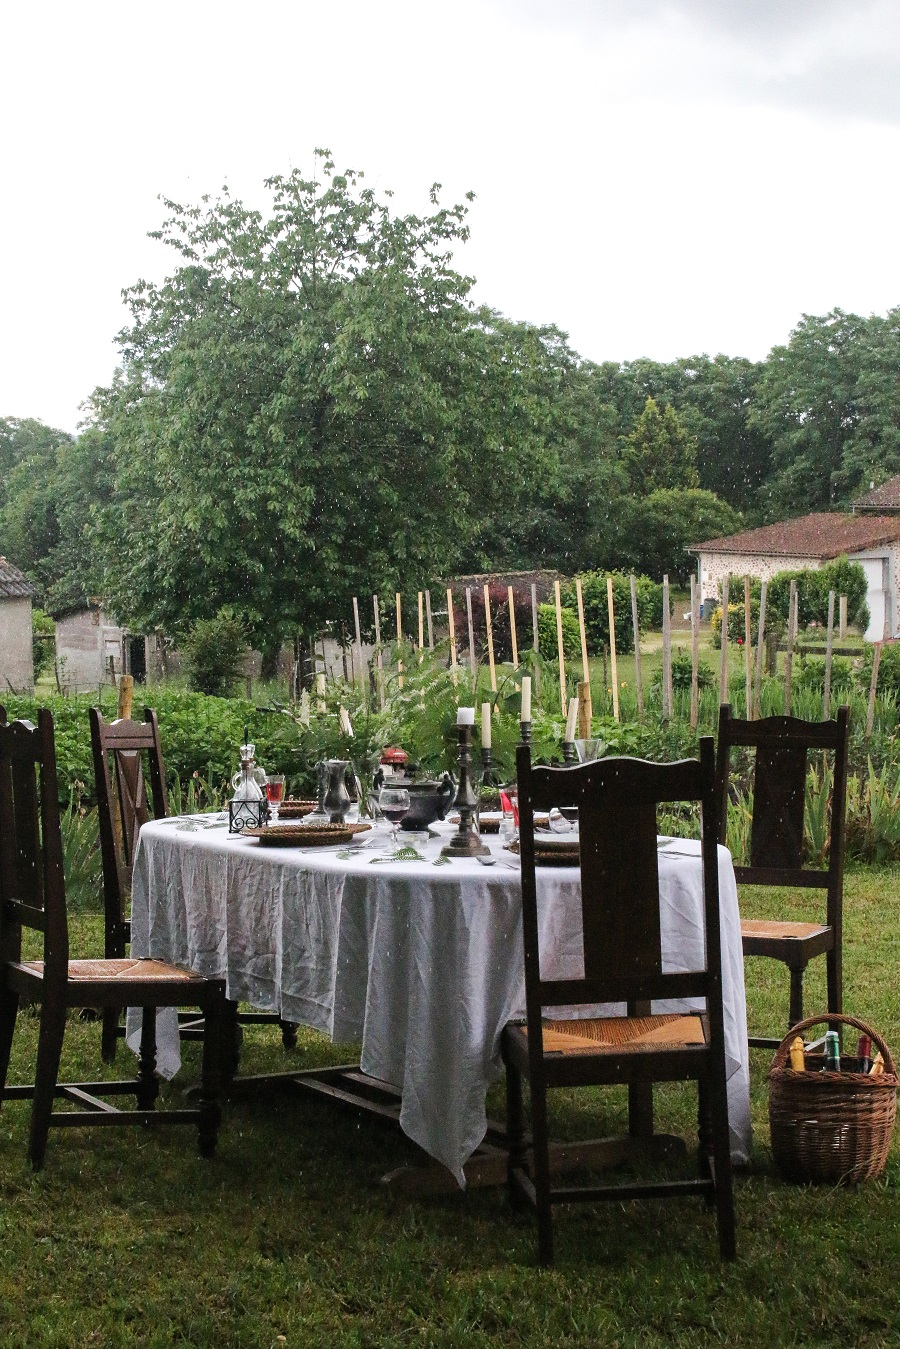 Top Tips for Creating an Inexpensive Table Setting for a Magical Alfresco Meal